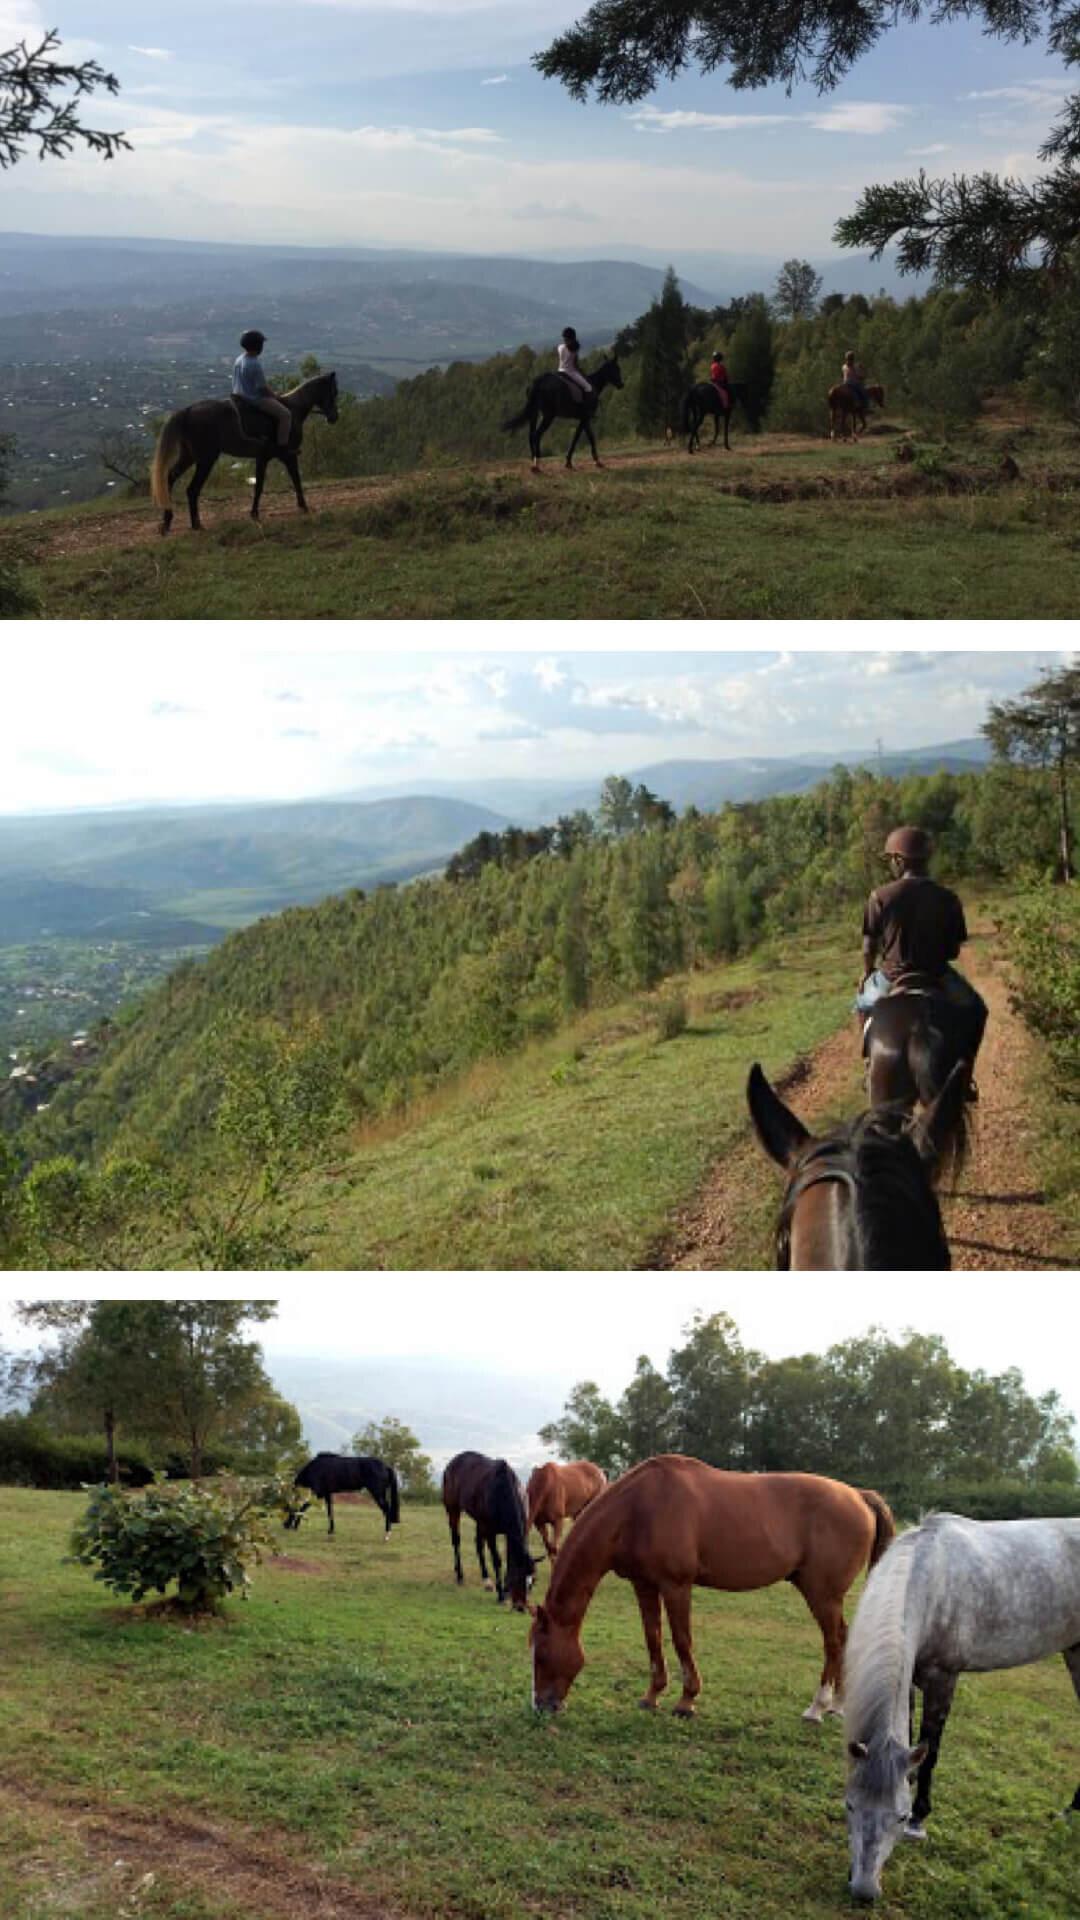 5.Ride a horse on Mt. Kigali